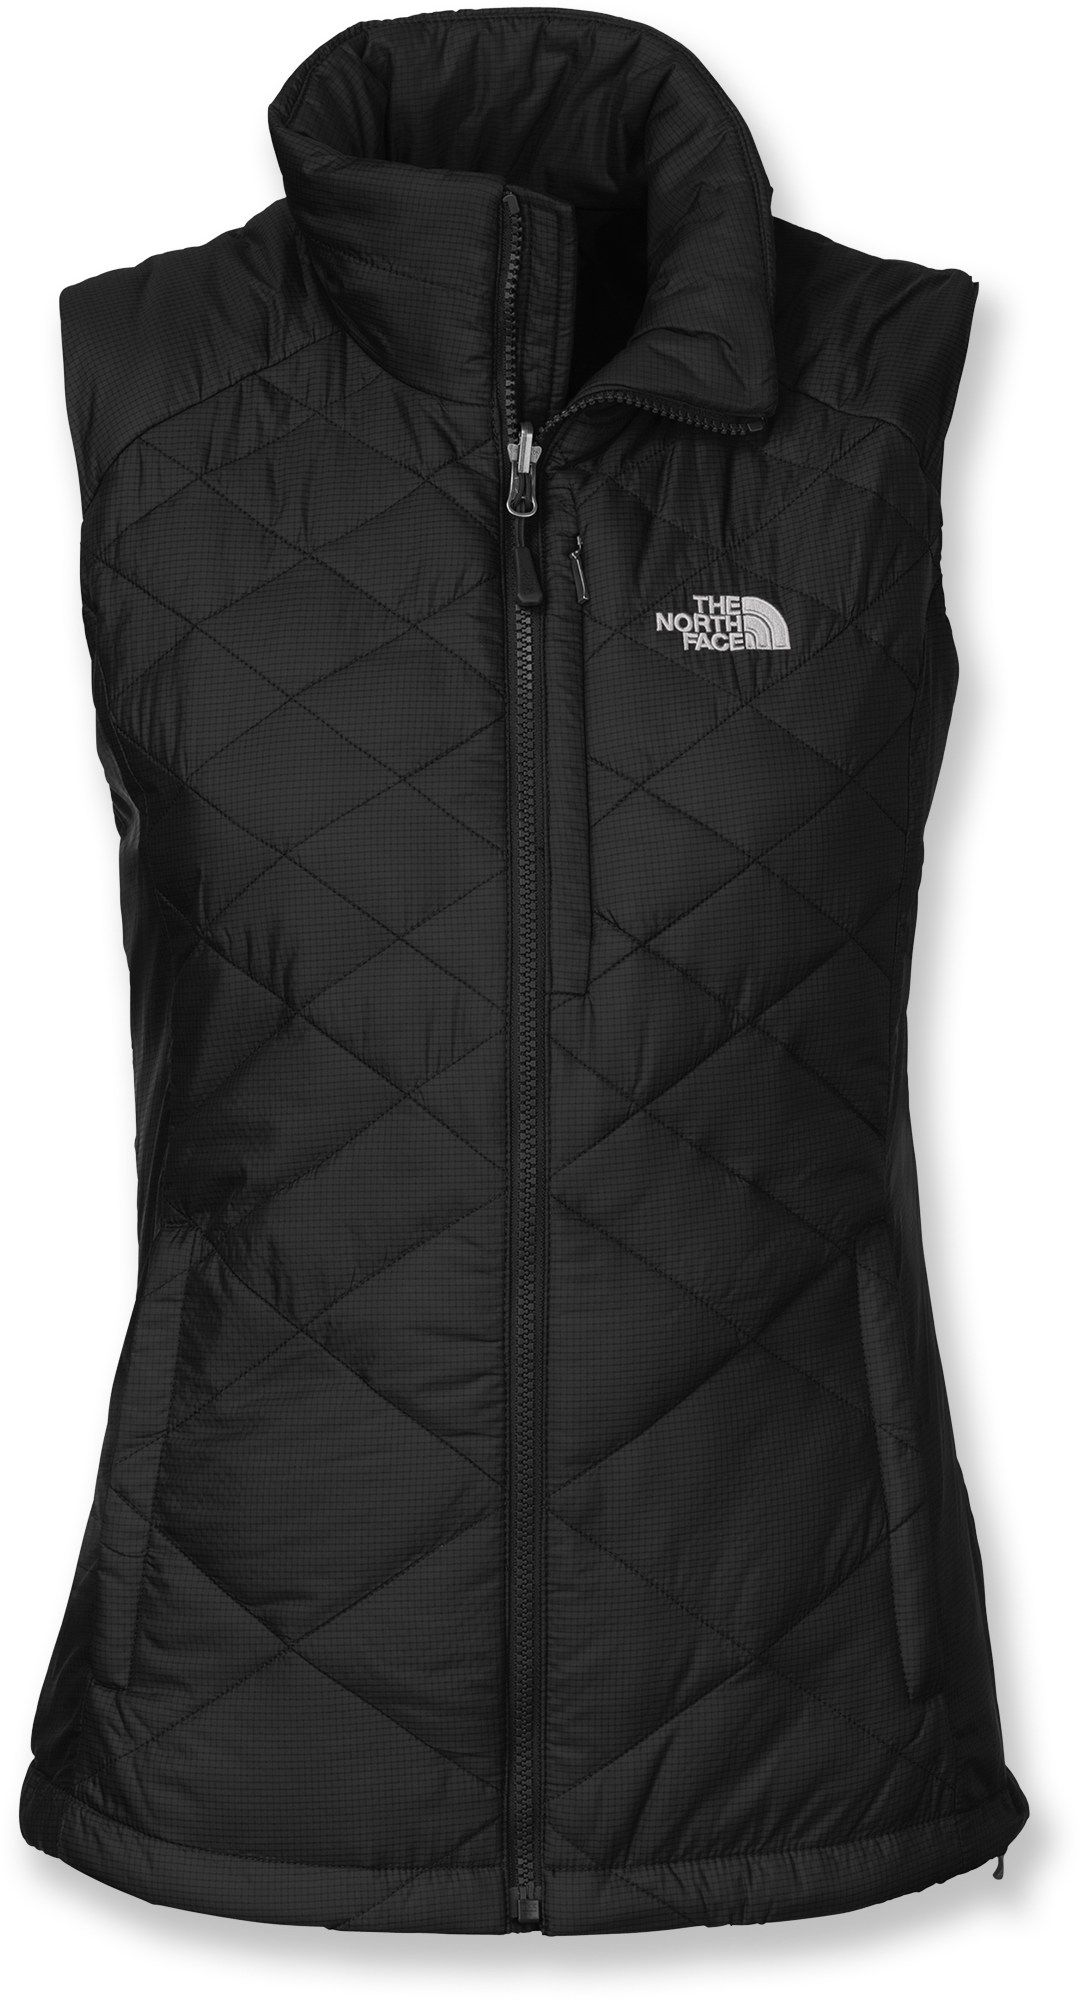 e7887412dbbe87 The North Face Redpoint Vest - Women s - Free Shipping at REI.com-- or  similar fitted puffer vest